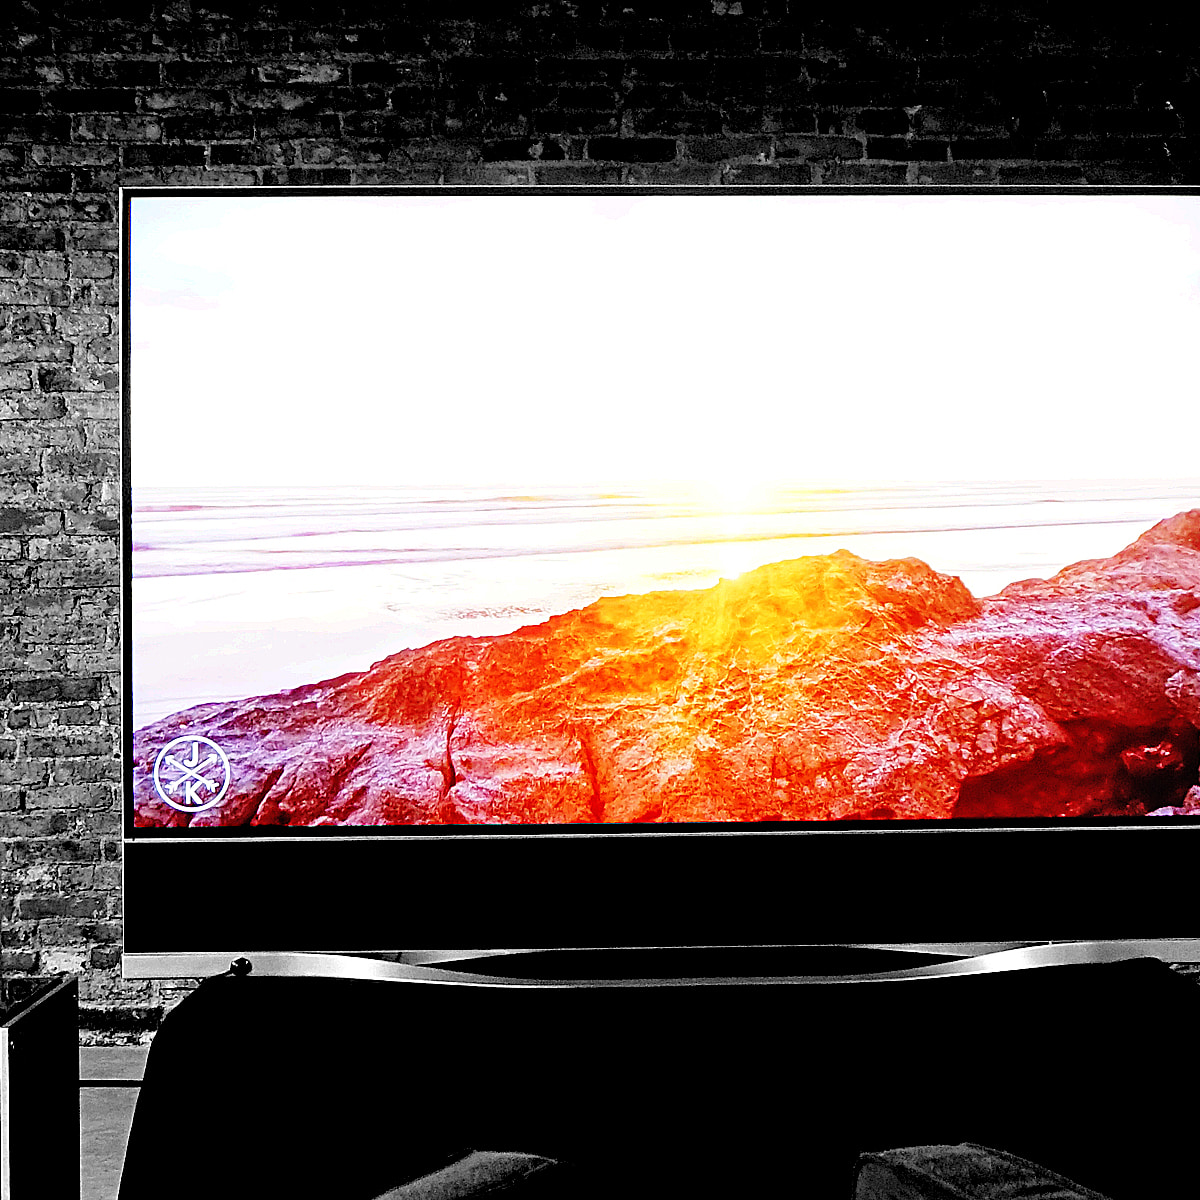 9cd64e1d5cc Vizio RS65-B2 Reference Series Review - Reviewed Televisions